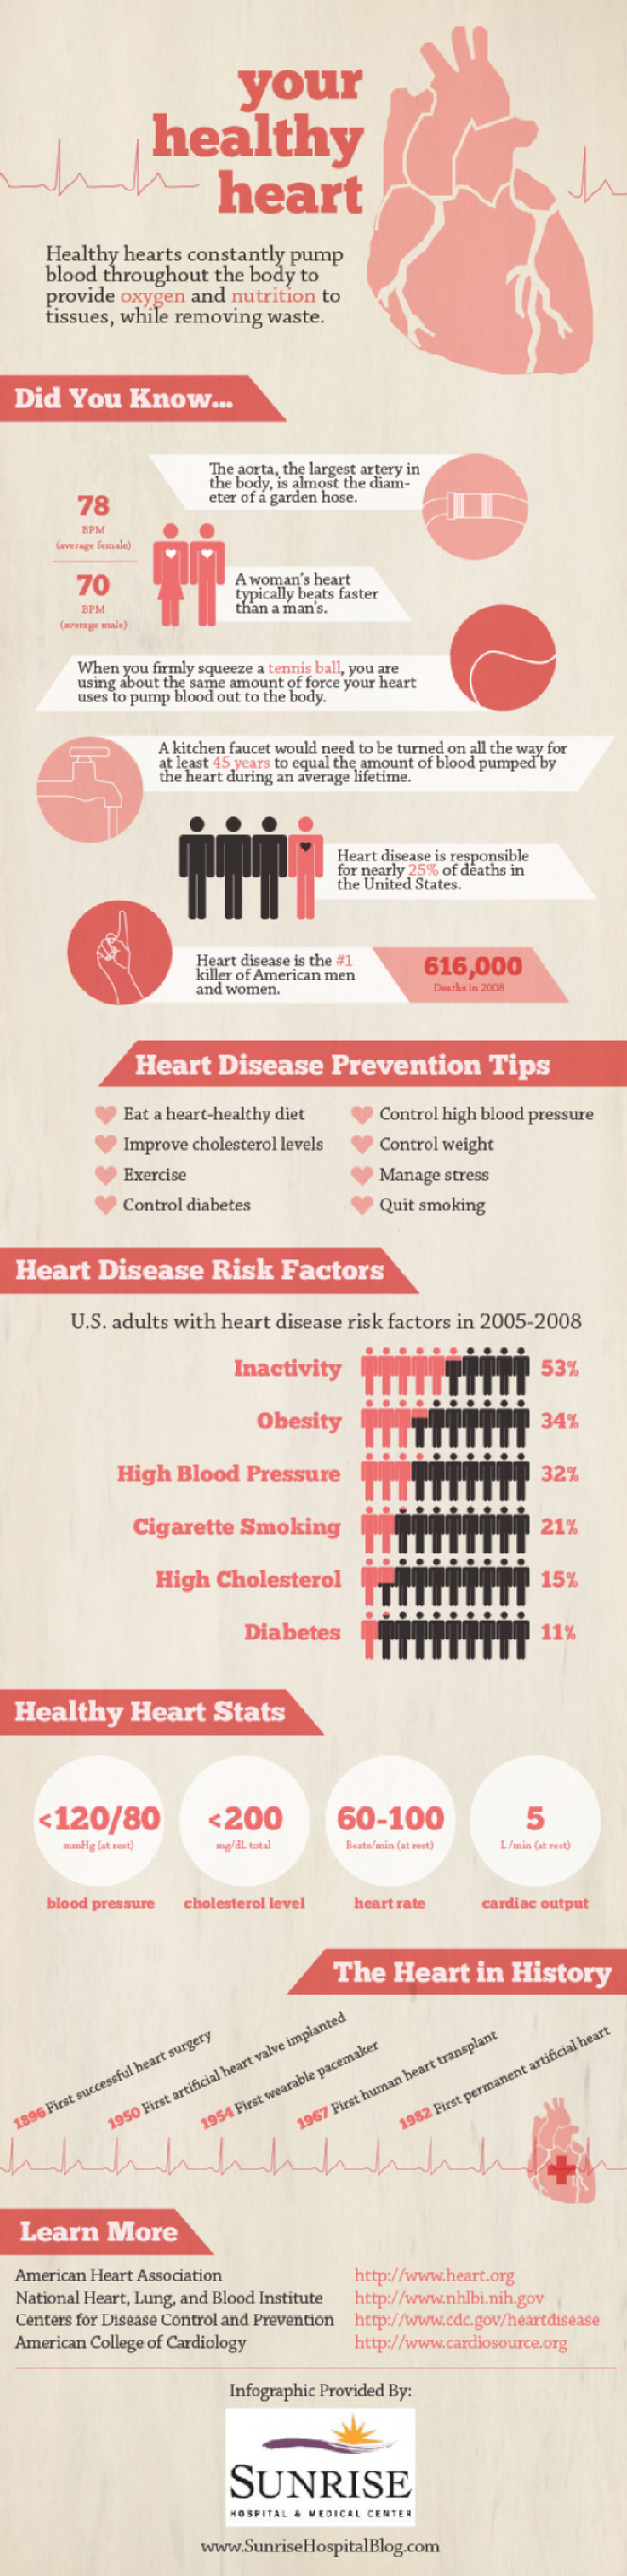 Tips for Heart Health and Heart Disease Prevention Infographic